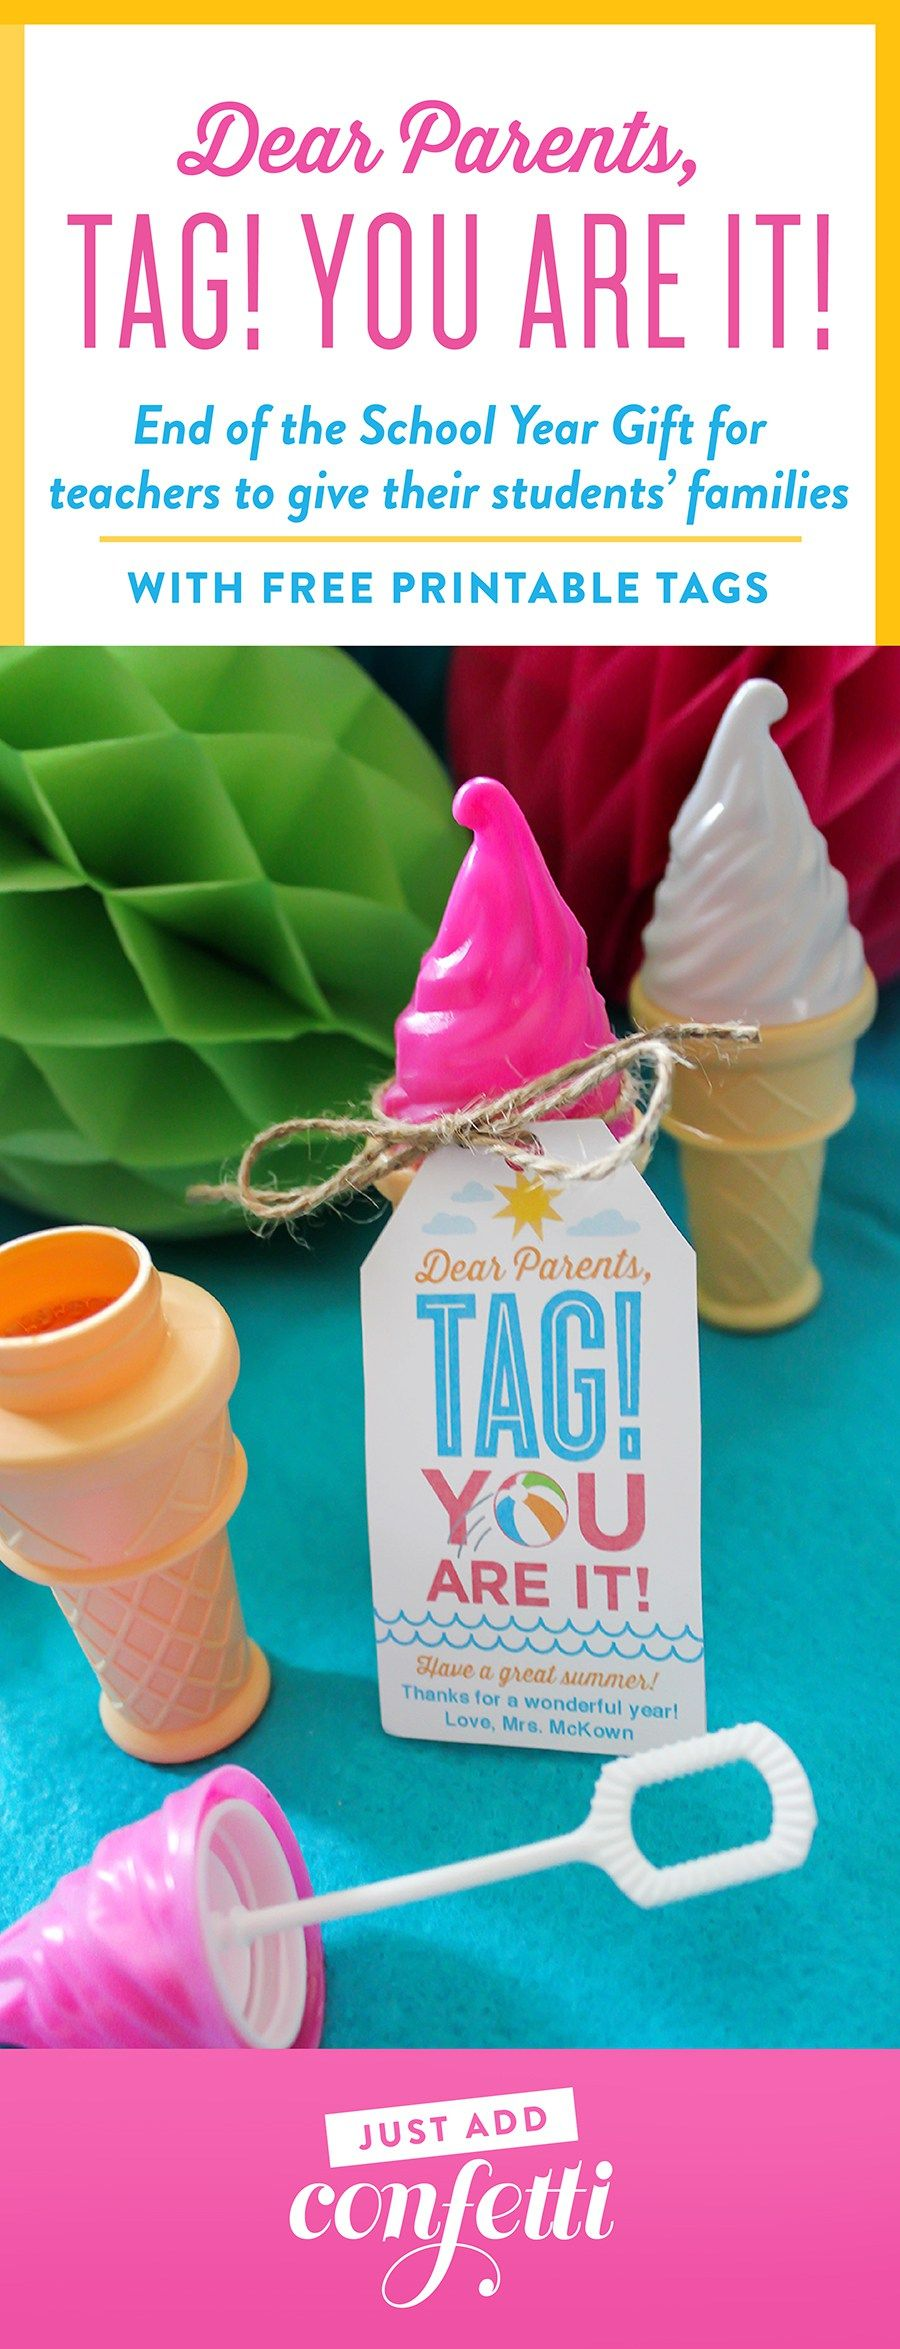 end of the school year gift idea, Dear Parents, Tag! You are it!, end